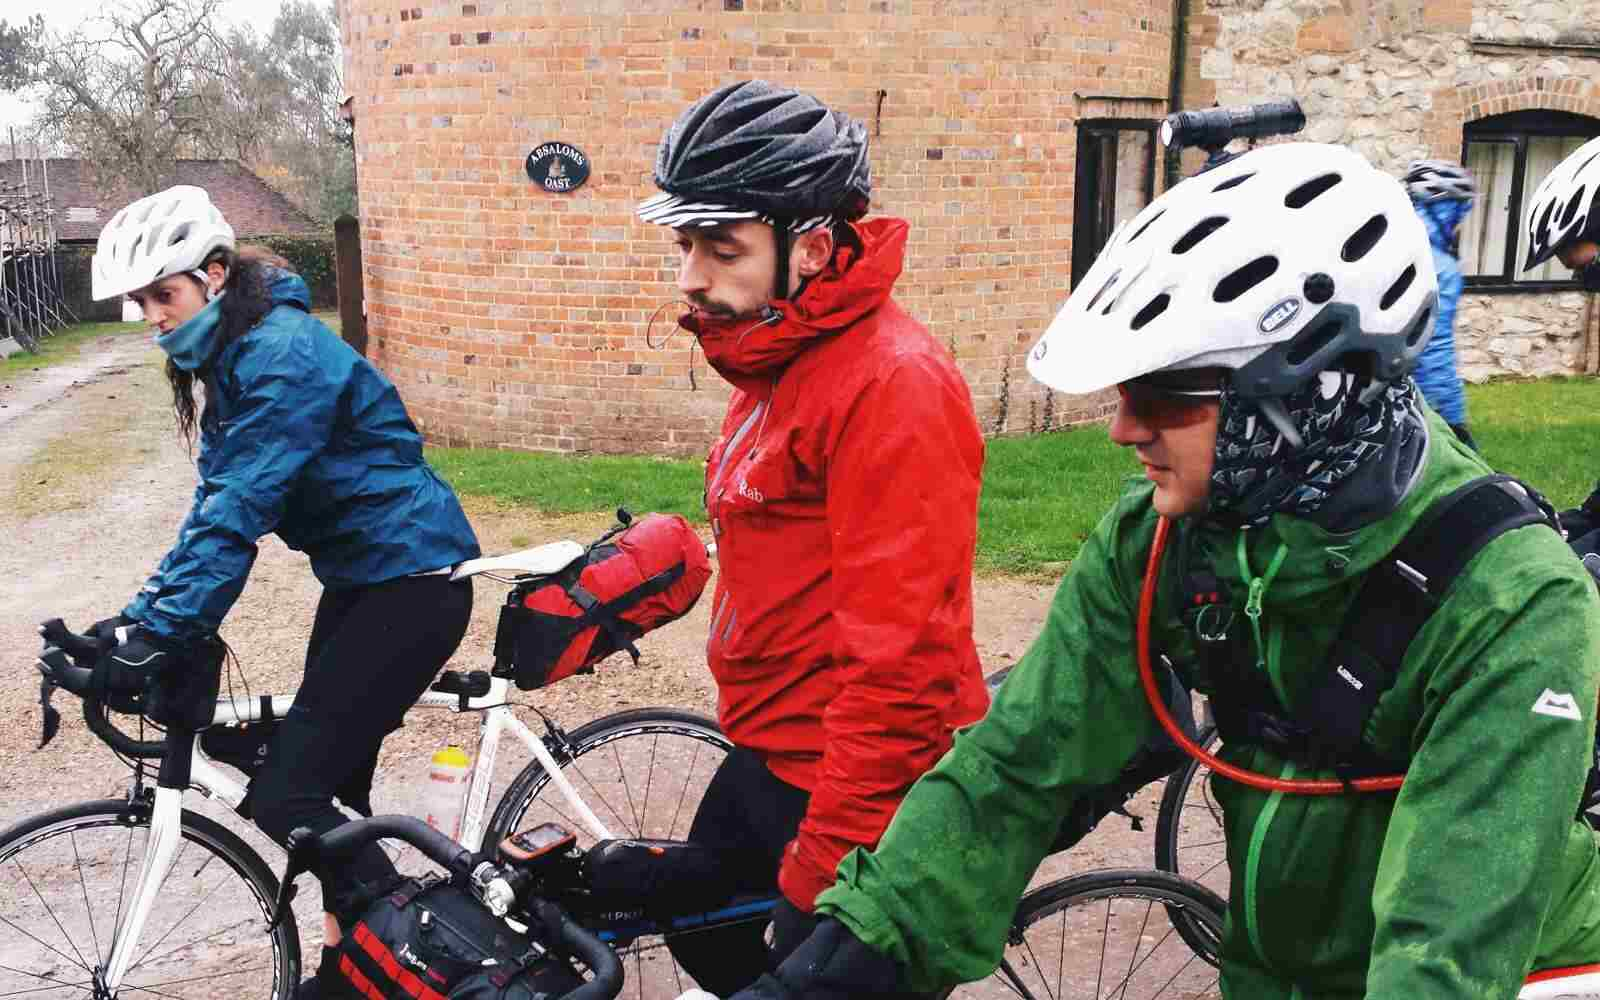 Cyclists in the rain bike packing